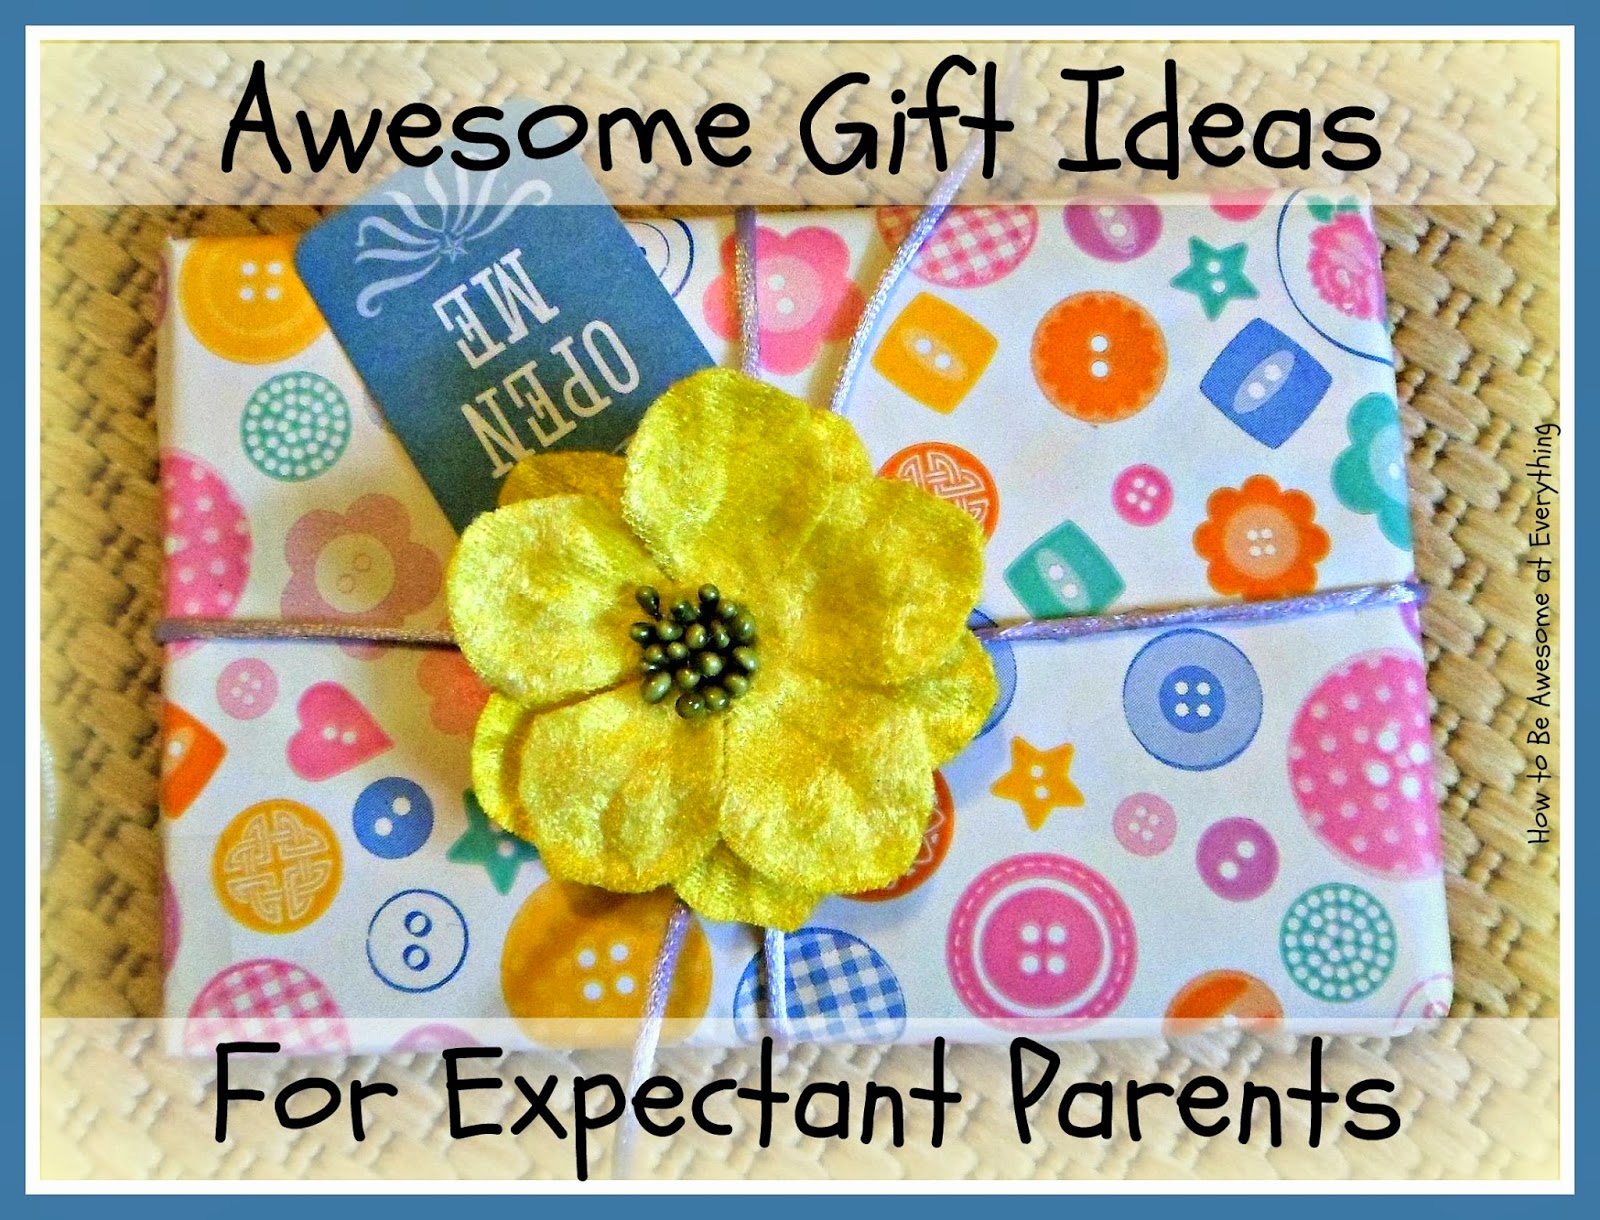 Baby Gifts For Parents Who Have Everything : How to be awesome at everything gifts for